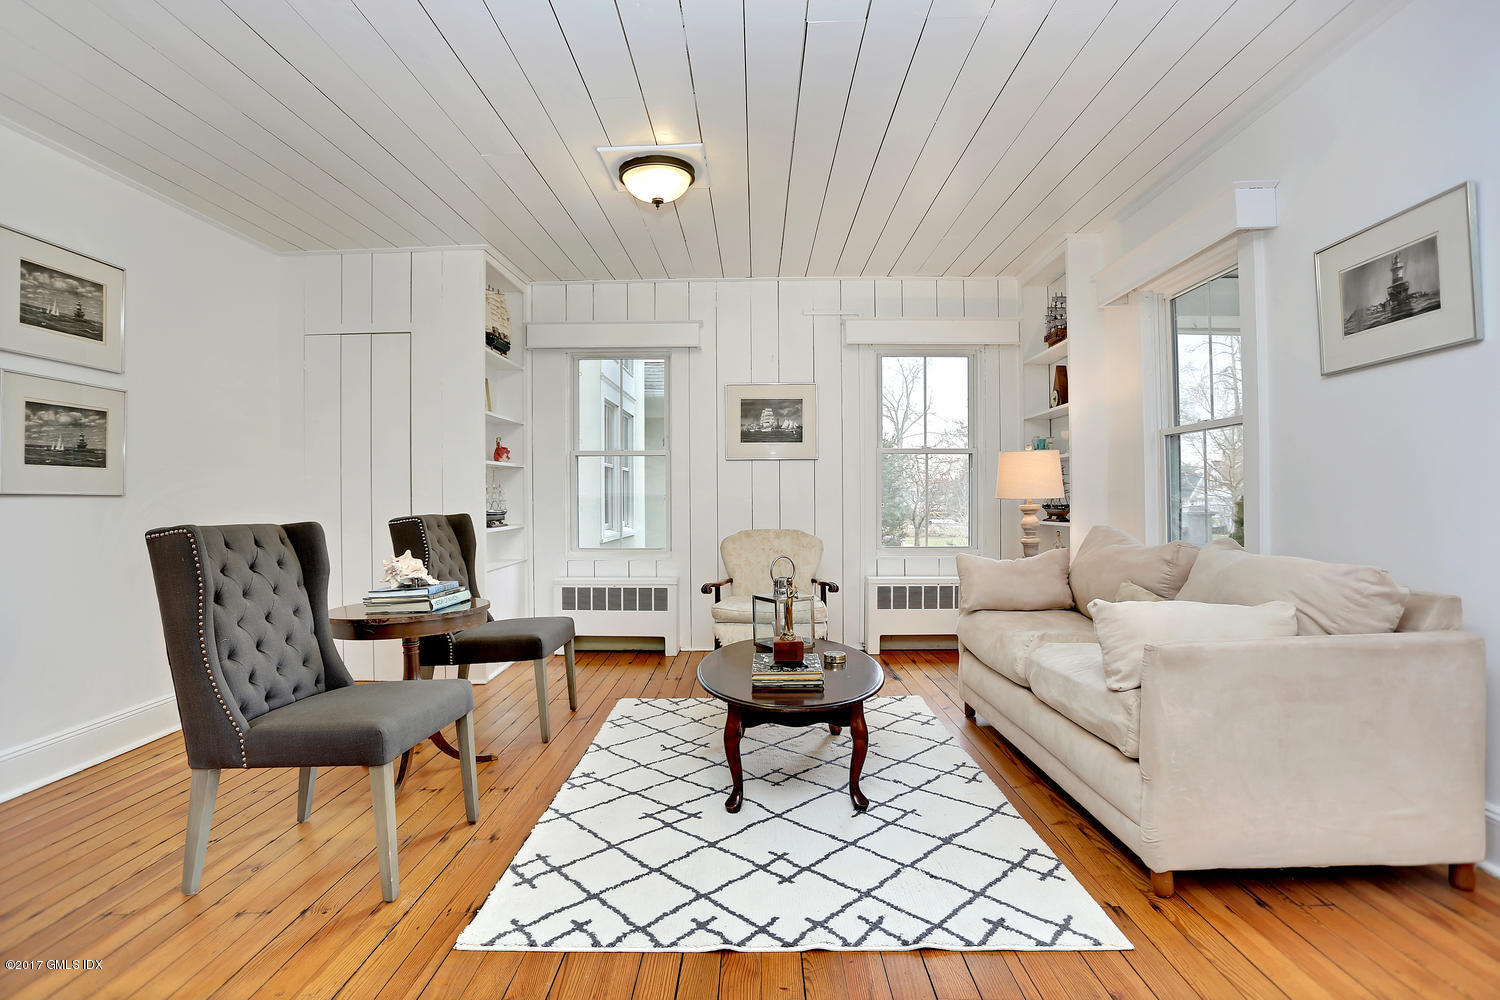 18 Grimes Road,Old Greenwich,Connecticut 06870,4 Bedrooms Bedrooms,4 BathroomsBathrooms,Single family,Grimes,103021